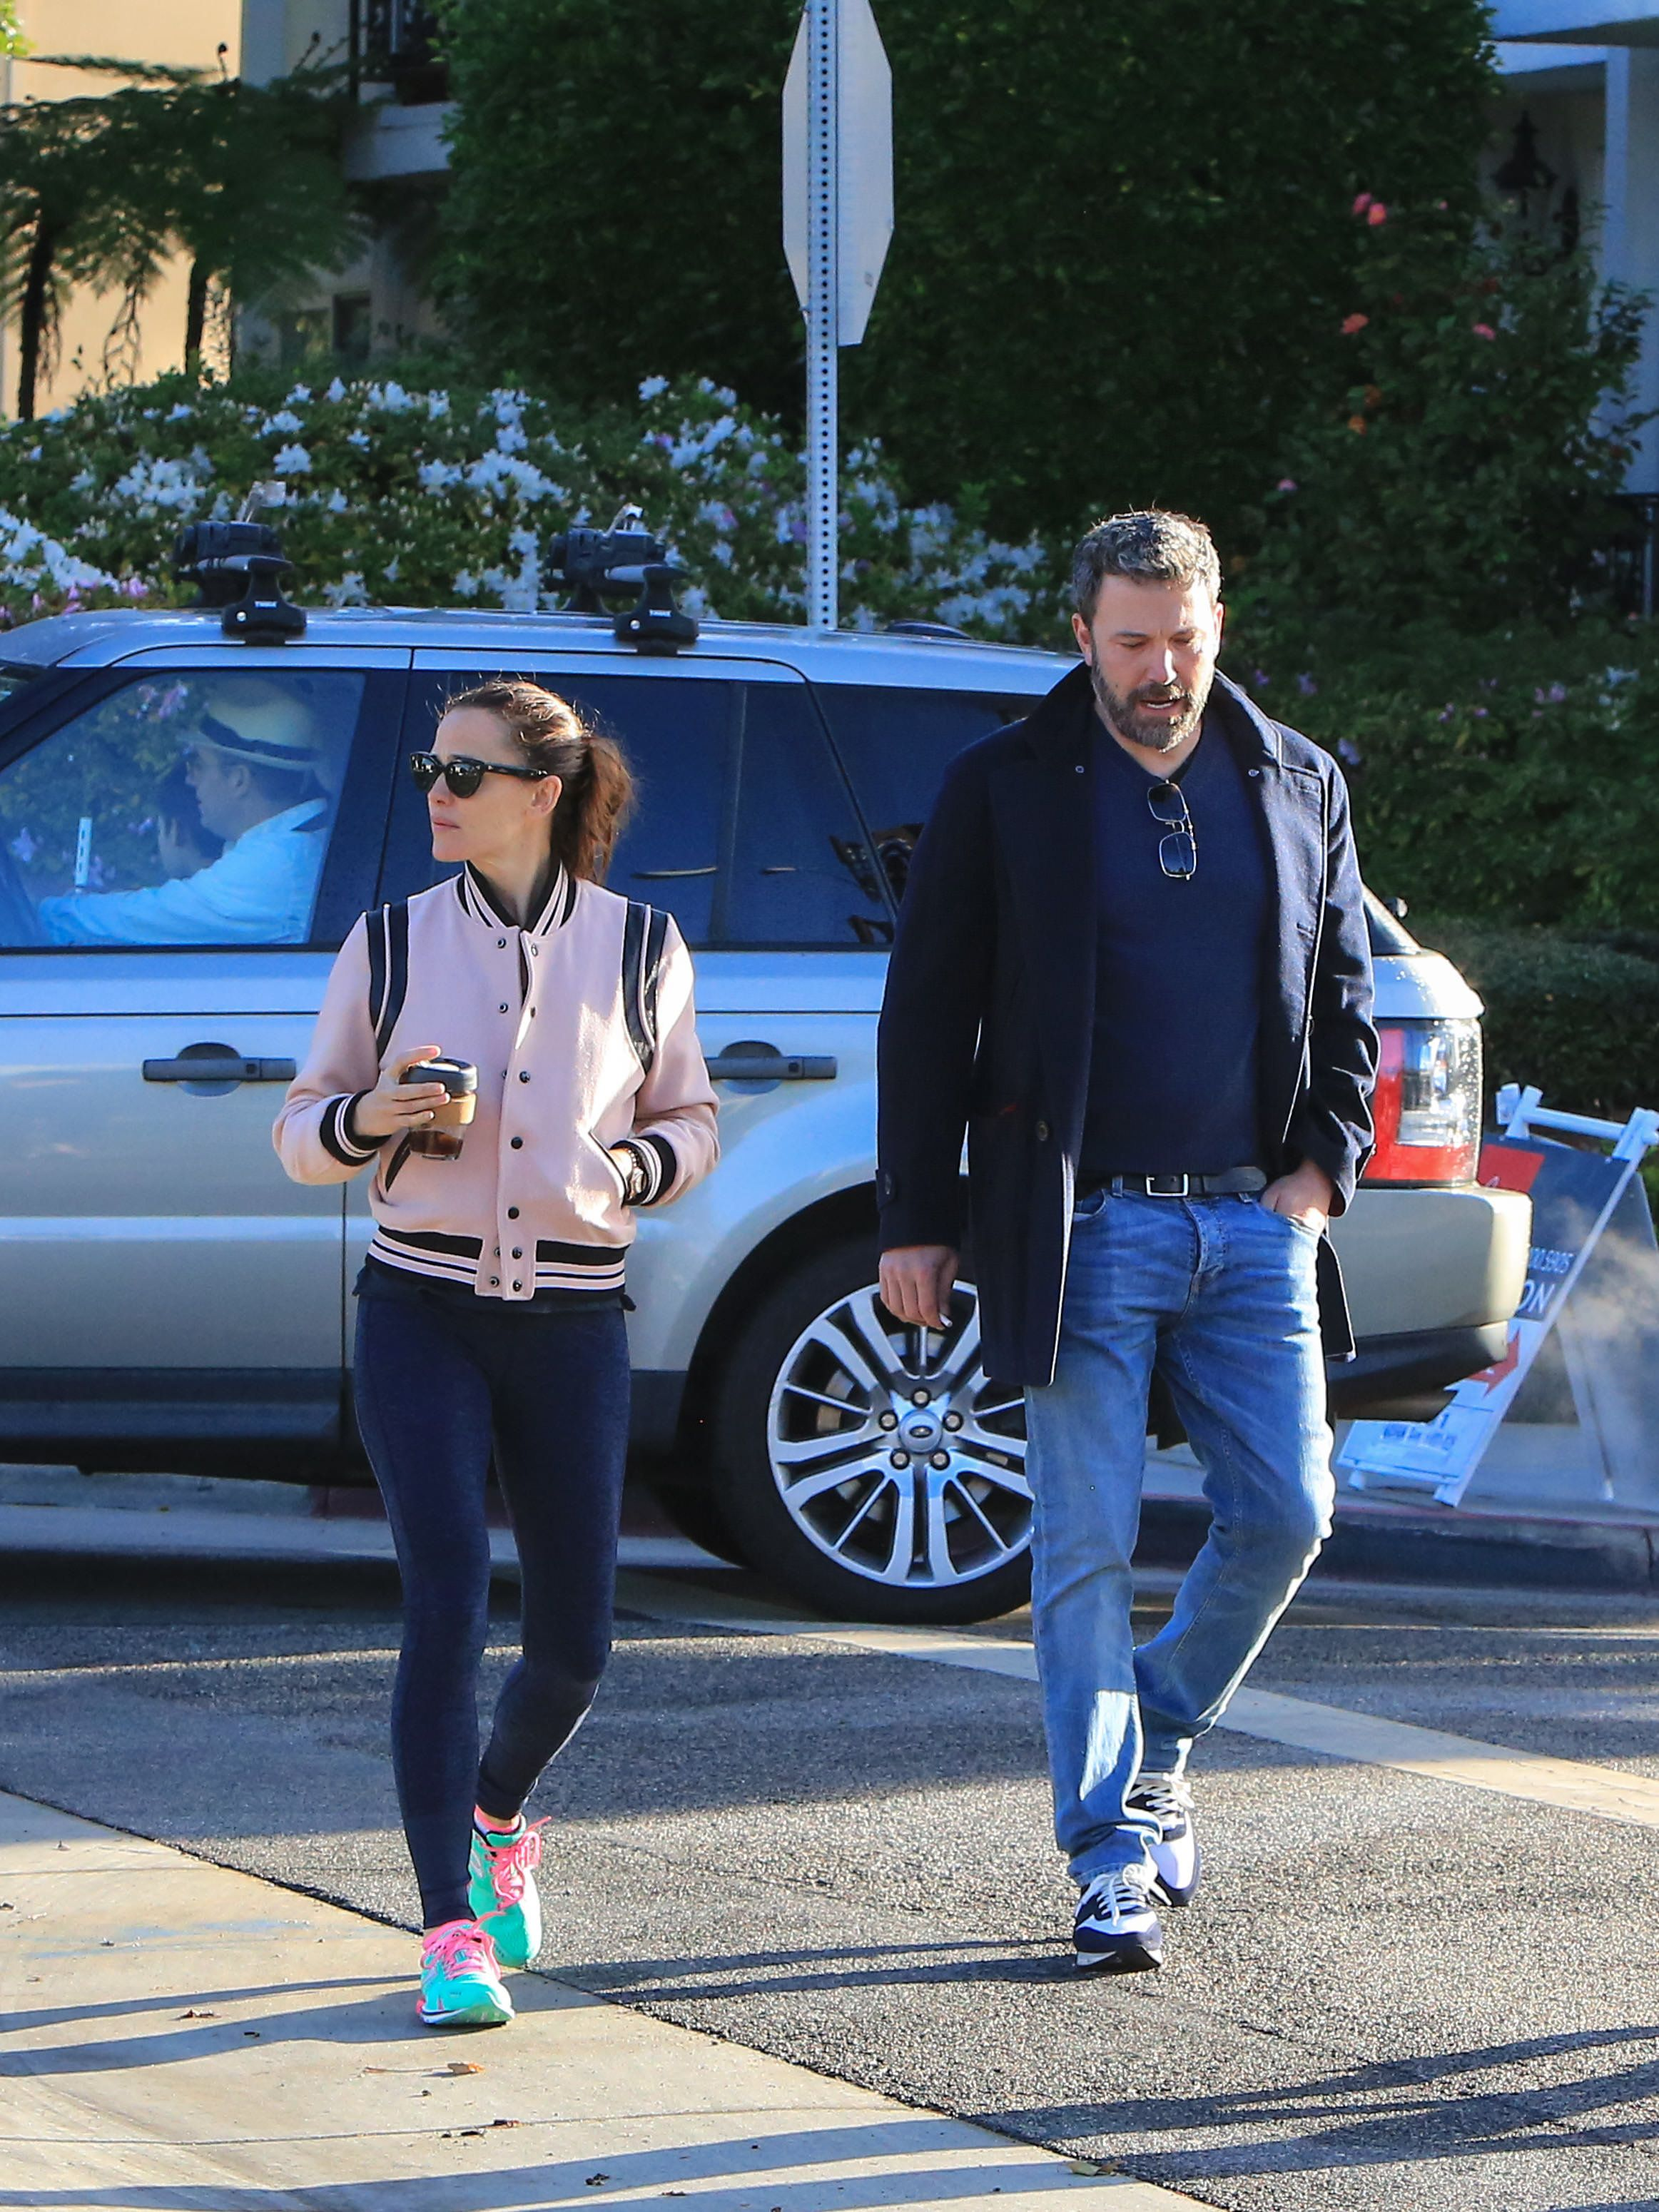 LOS ANGELES, CA - FEBRUARY 27: Jennifer Garner and Ben Affleck are seen on February 27, 2018 in Los Angeles, California.  (Photo by BG004/Bauer-Griffin/GC Images)